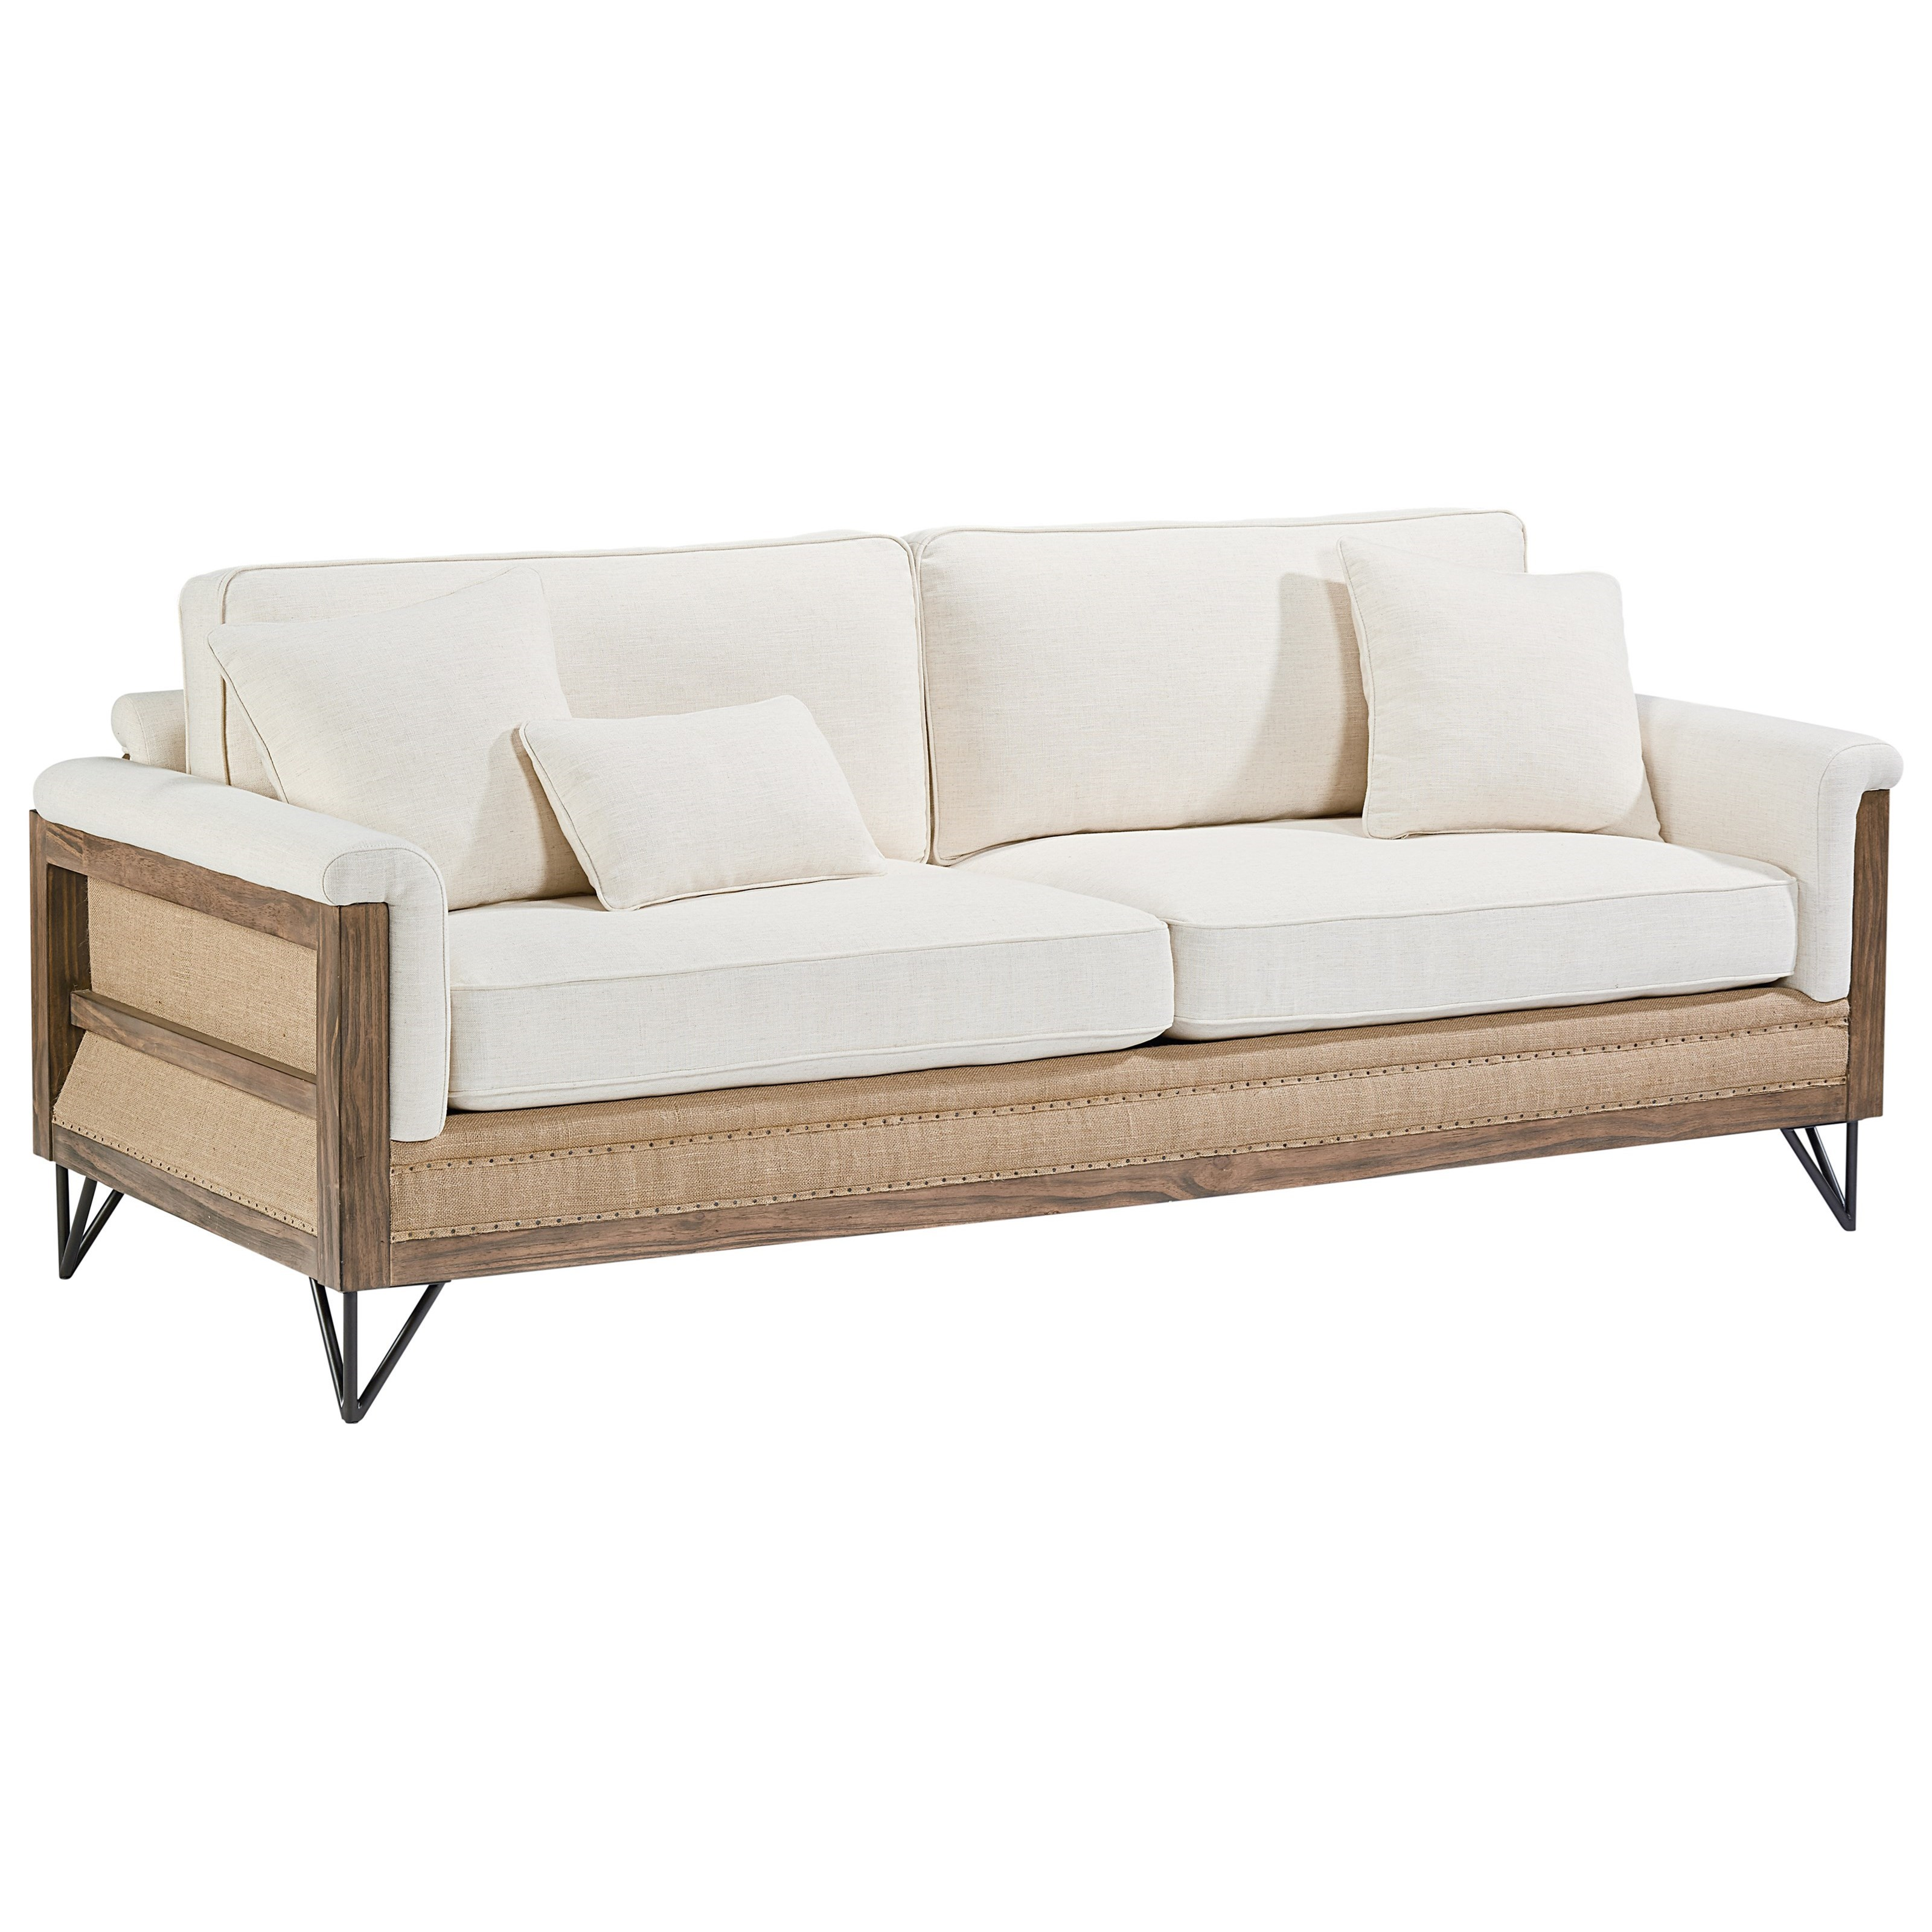 Magnolia Home By Joanna Gaines Paradigm Sofa With Exposed Wood Frame   Item  Number: 55538301